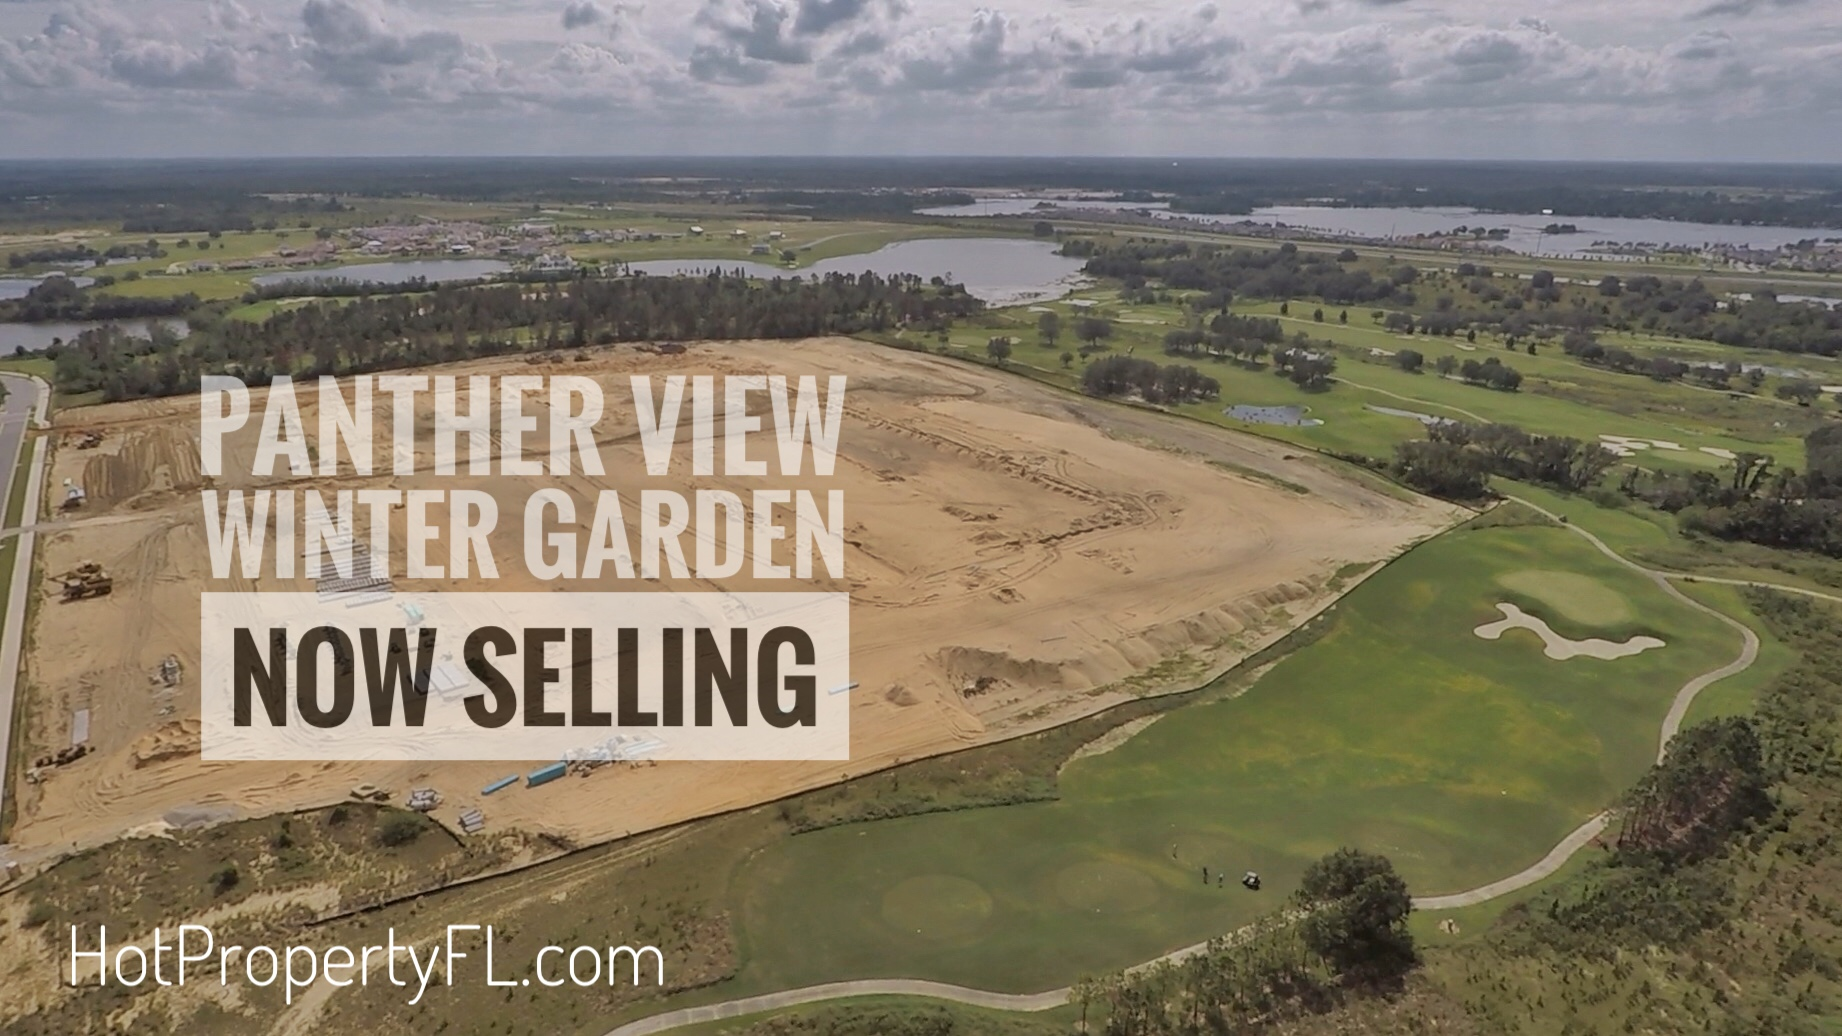 Panther View by Lennar. Winter Garden FL